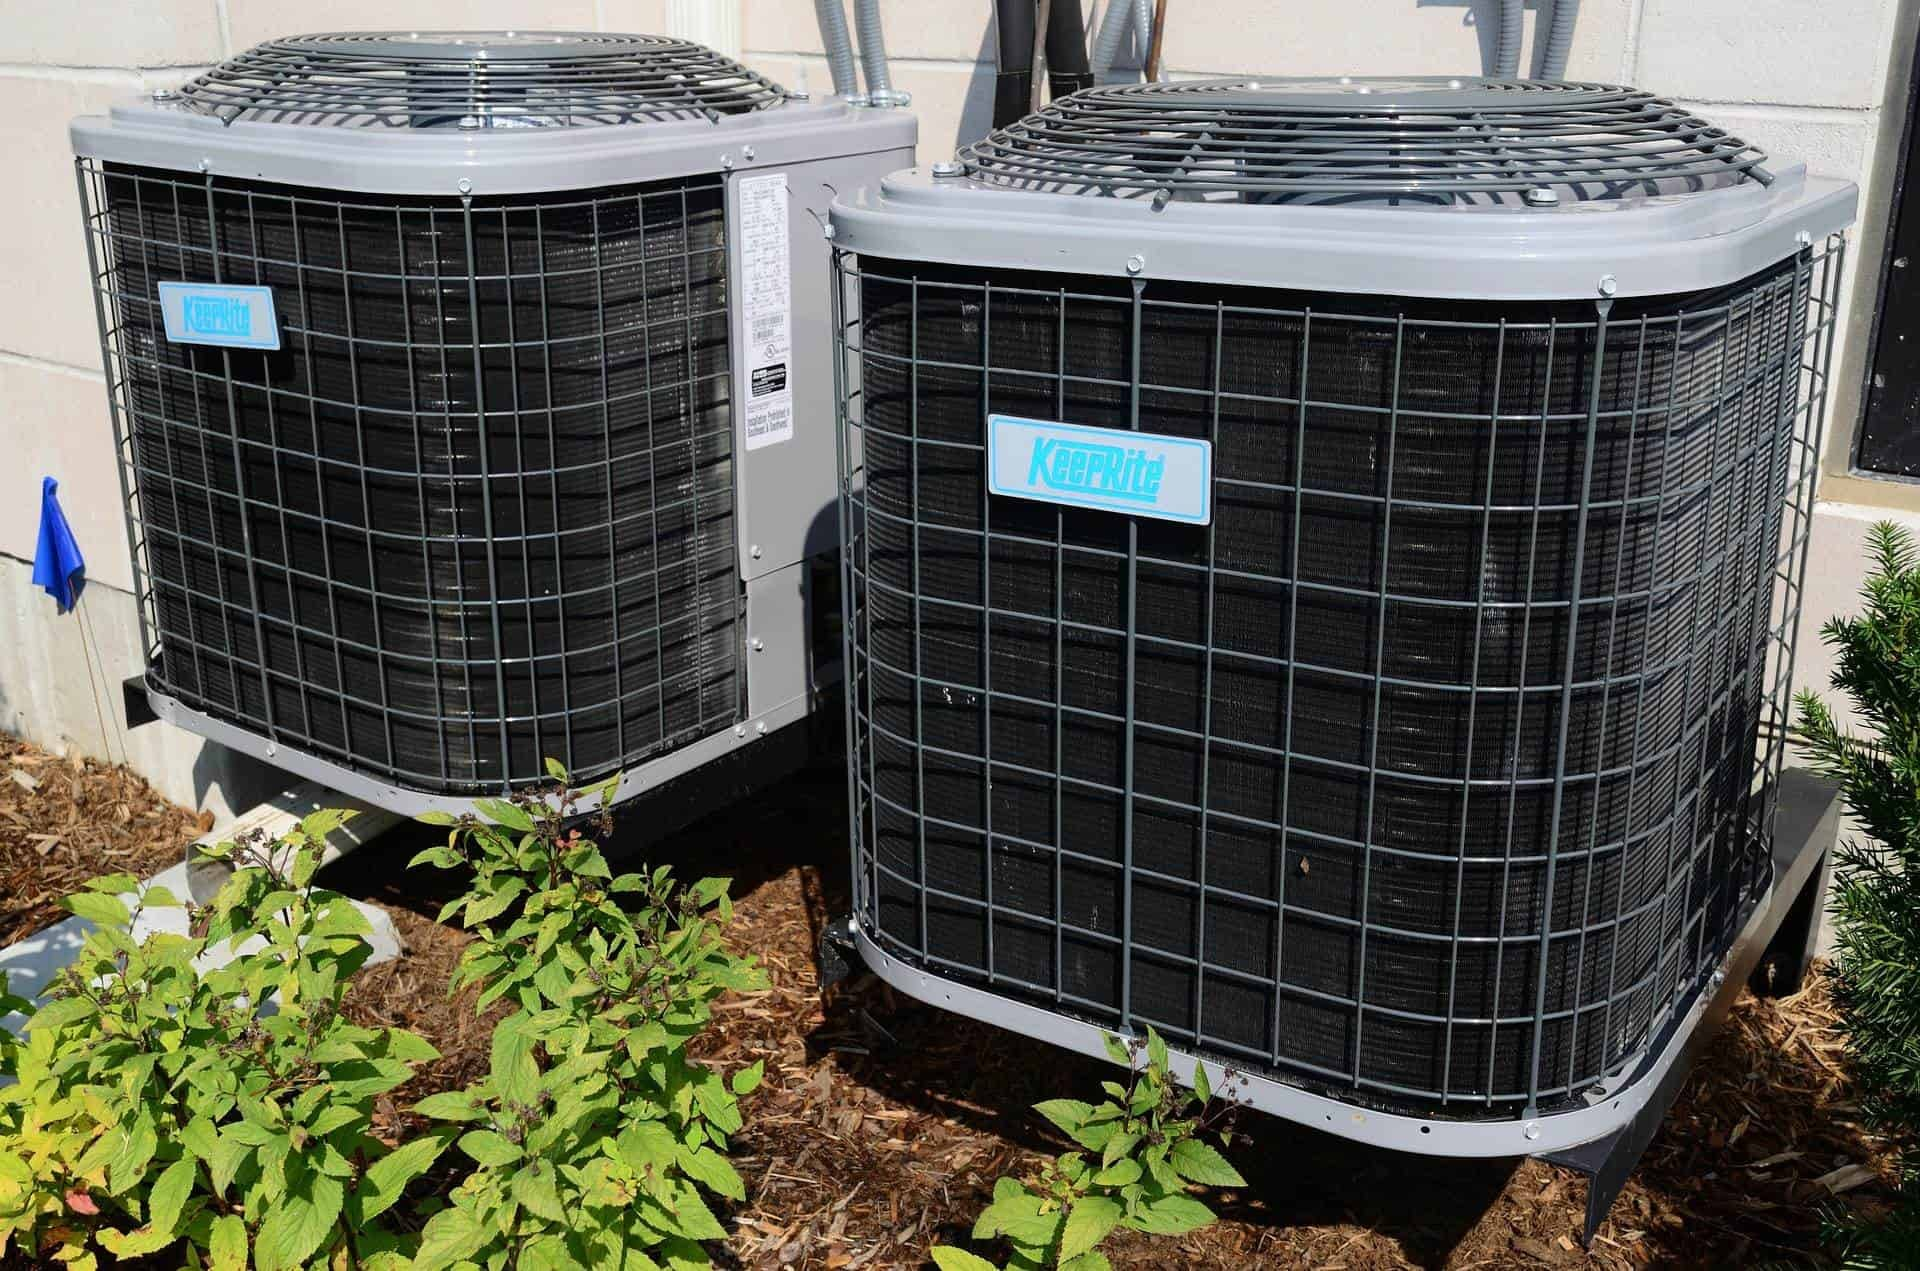 commercial air conditioning units outside a building